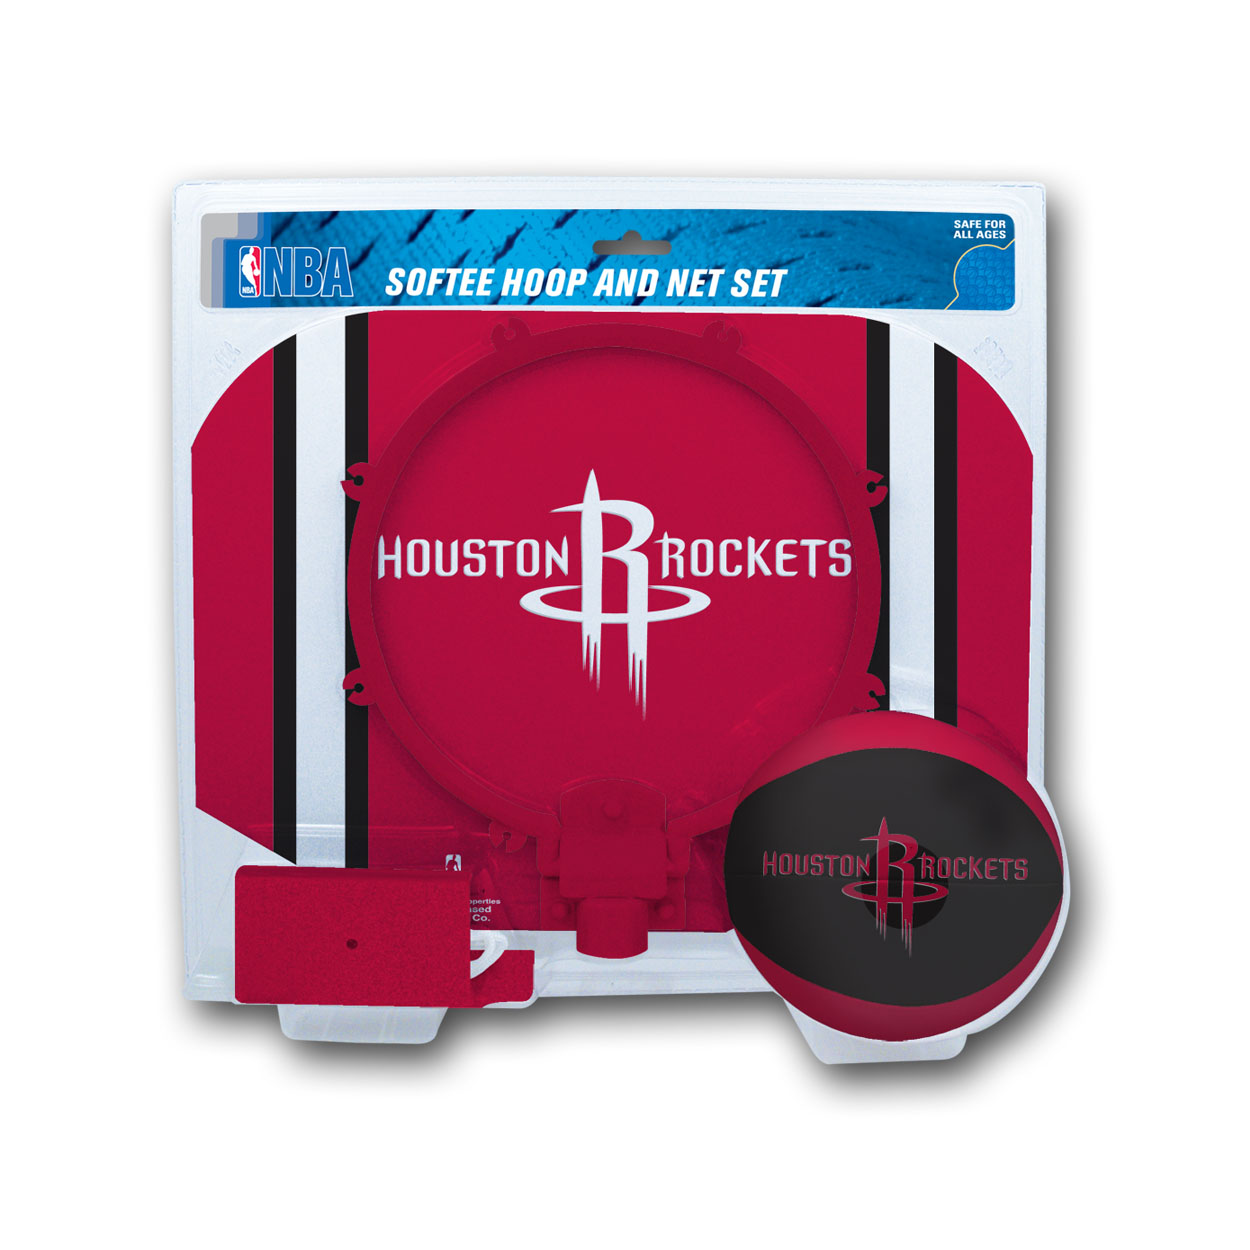 Rawlings NBA Slam Dunk Softee Hoop Set Houston Rockets